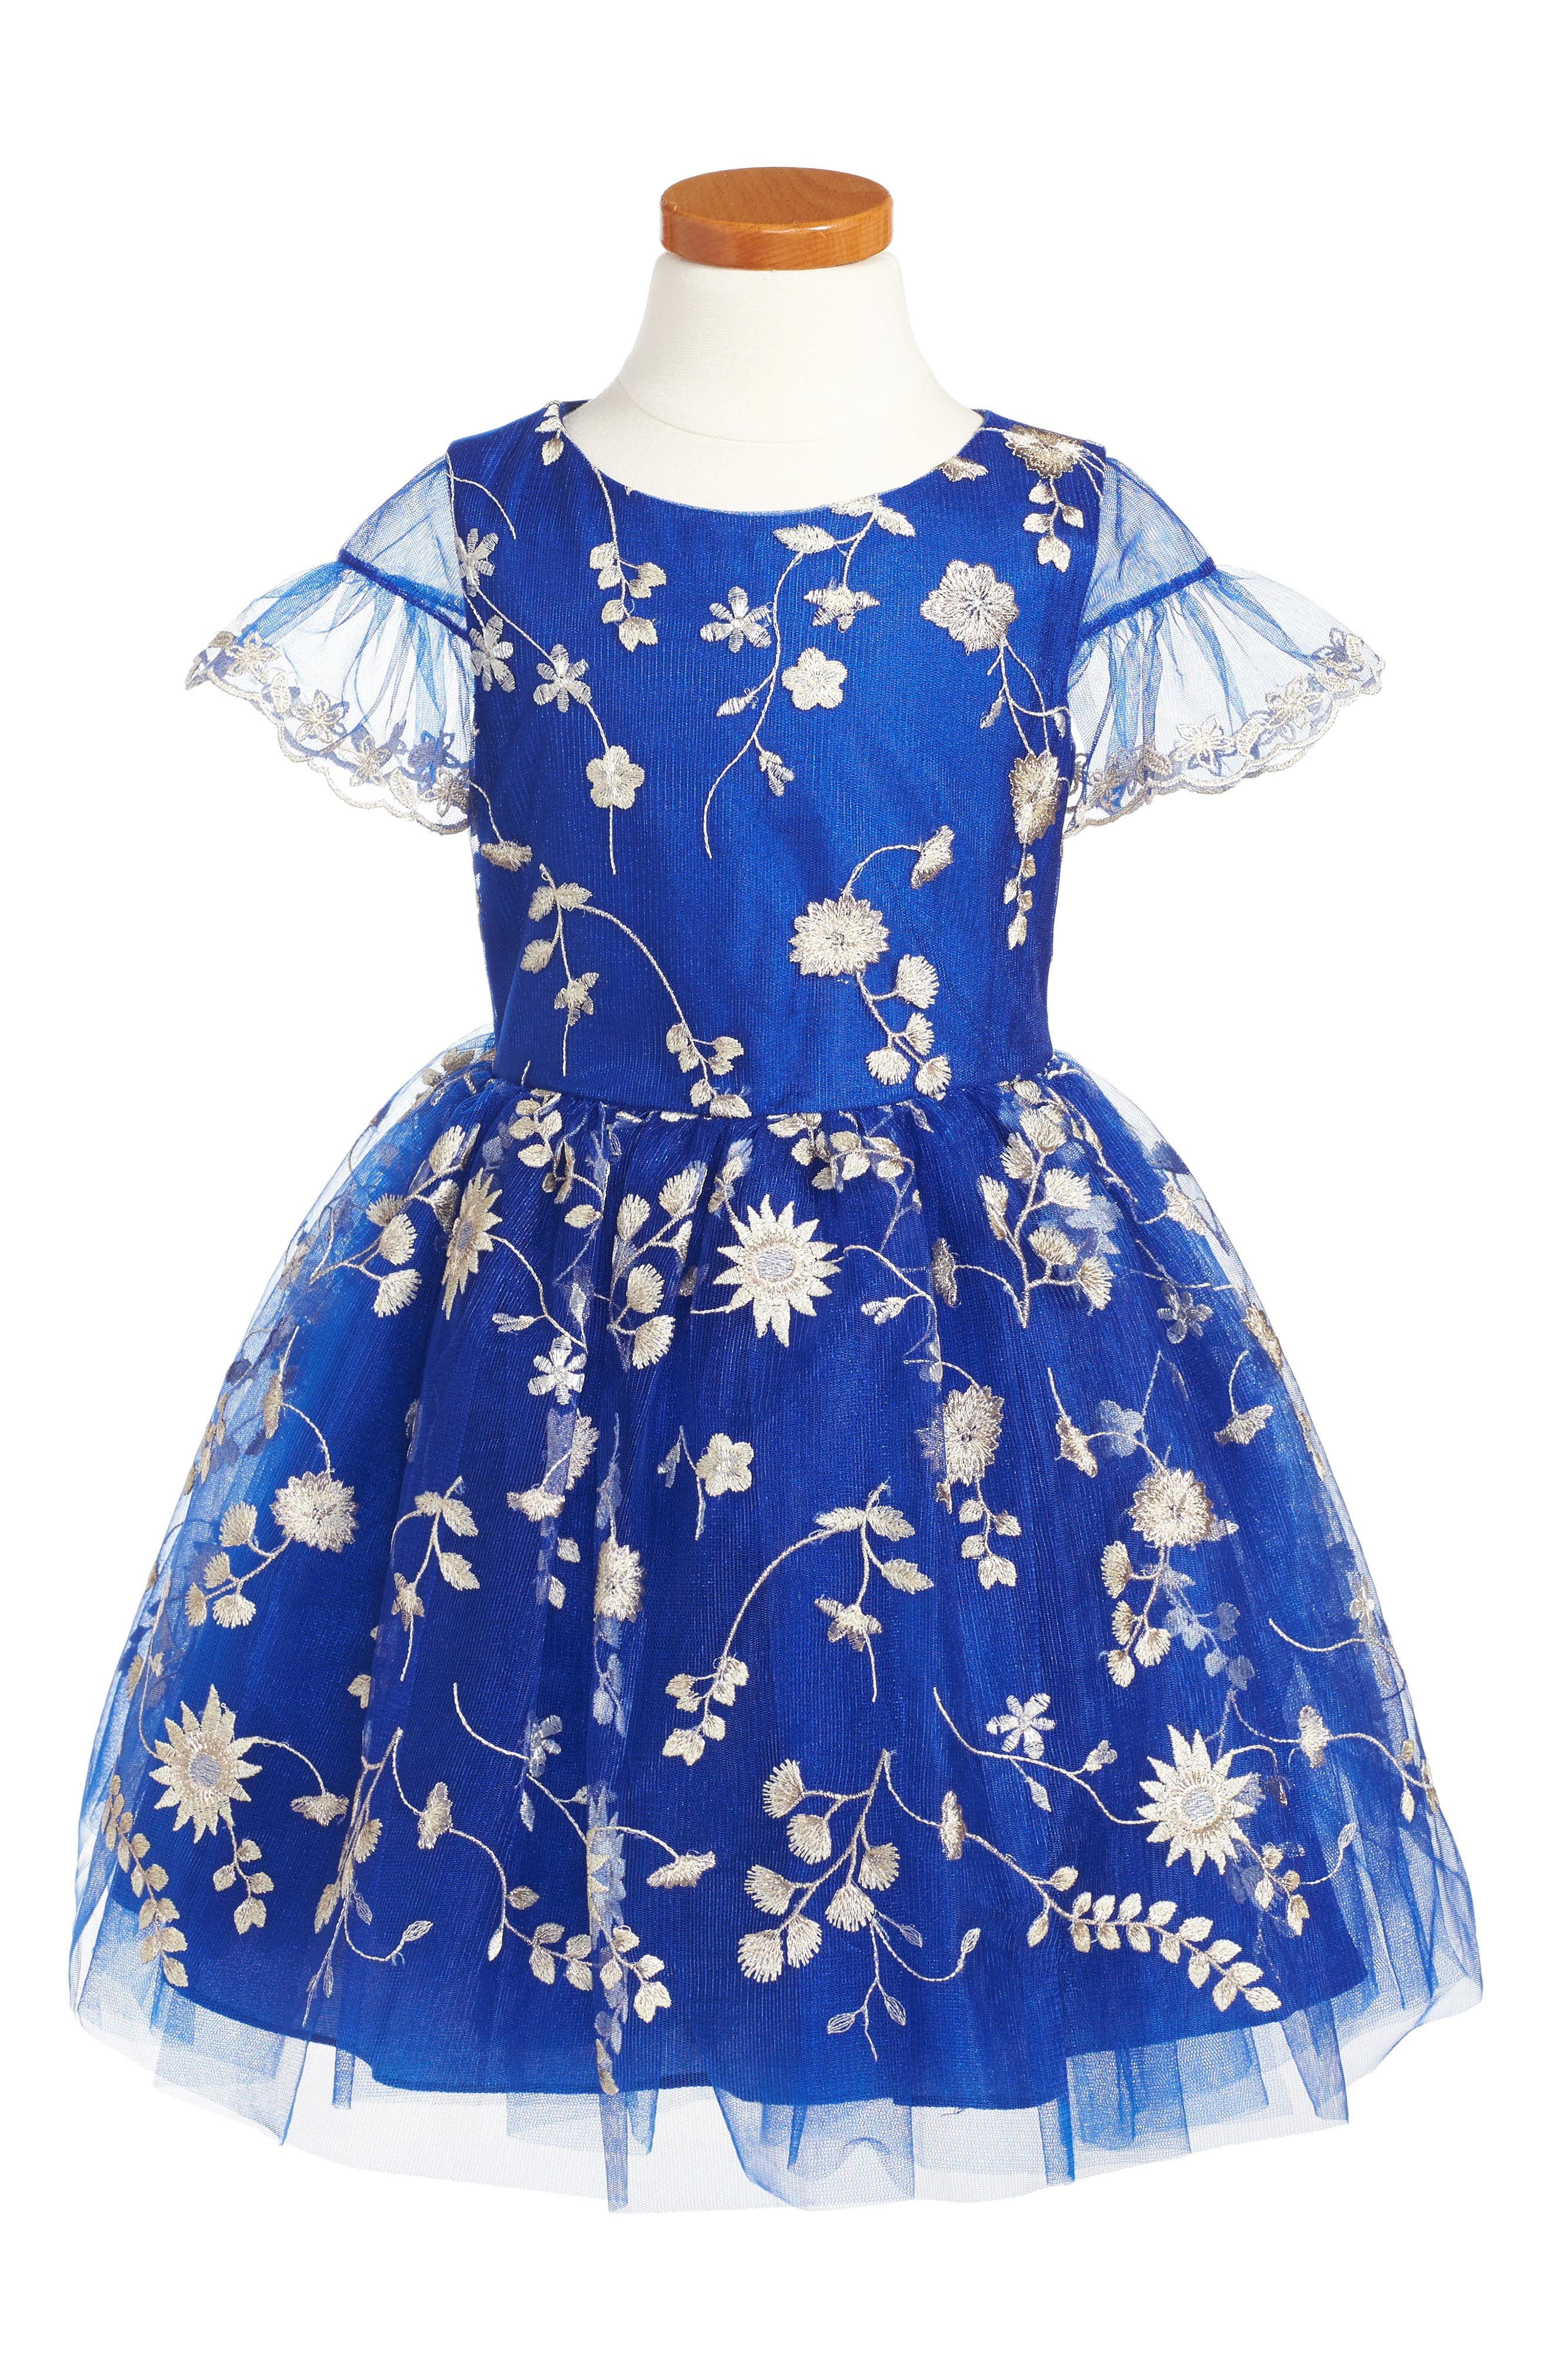 Floral Embroidery Dress,                             Main thumbnail 1, color,                             Royal Blue/ Gold